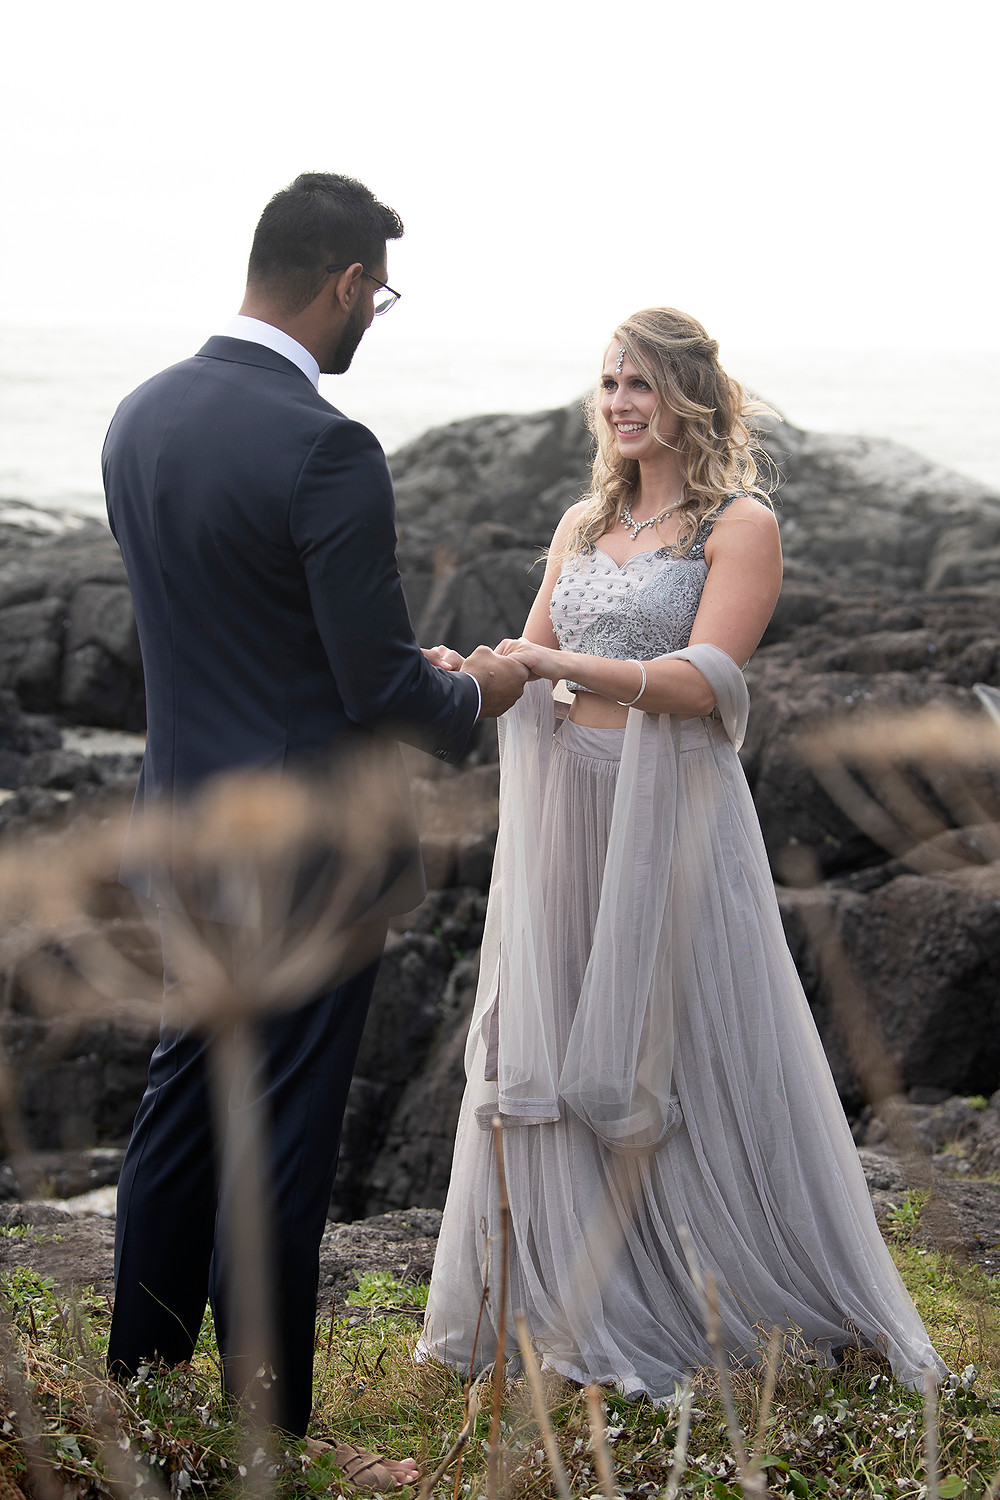 Bride looks at groom lovingly at their small wedding in Tofino. Photographed by Tofino wedding photographer Kaitlyn Shea.